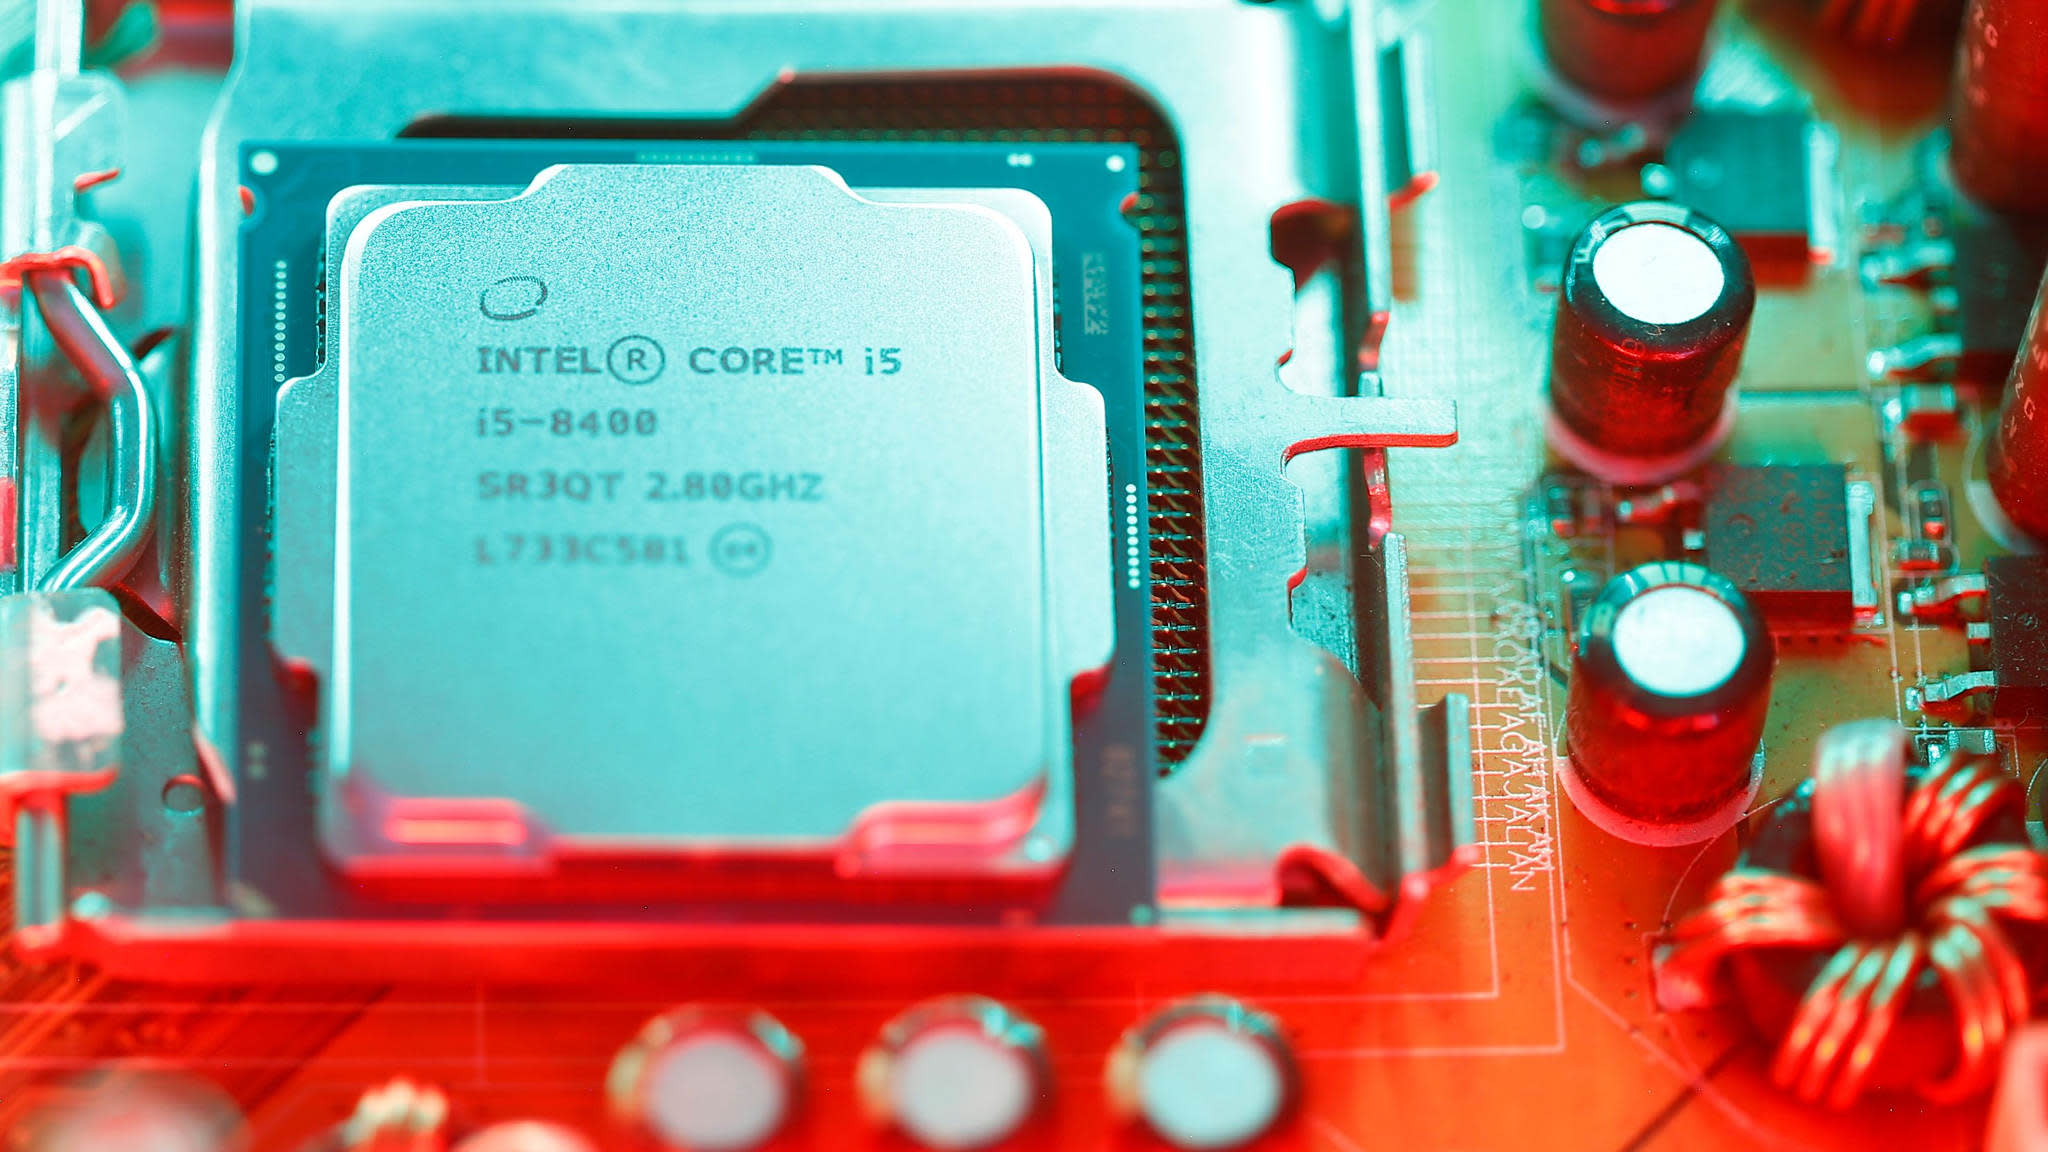 Intel's iPhone supply deal leaves PC makers facing chip shortage